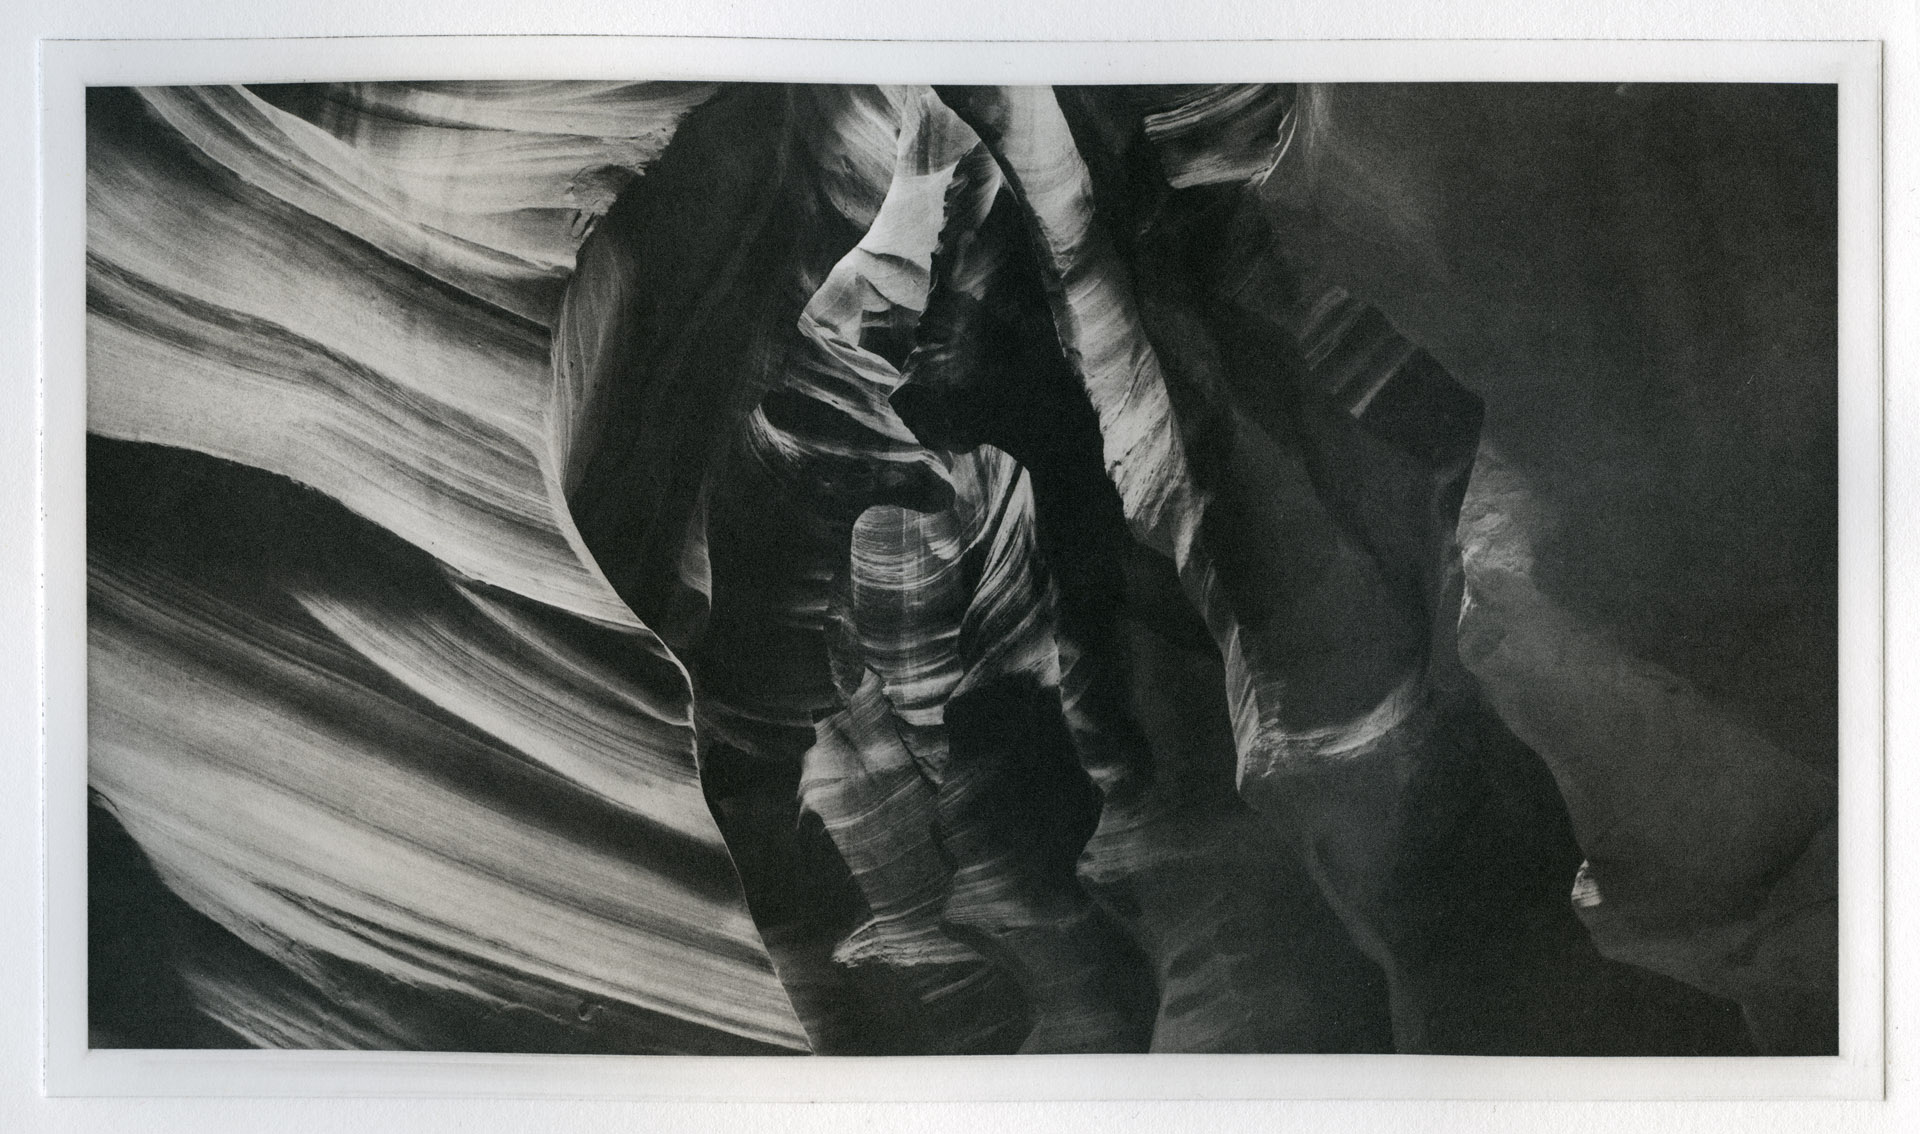 Antelope Canyon, Page, Arizona, November, 2008. Gravure print made 23-Apr-14.